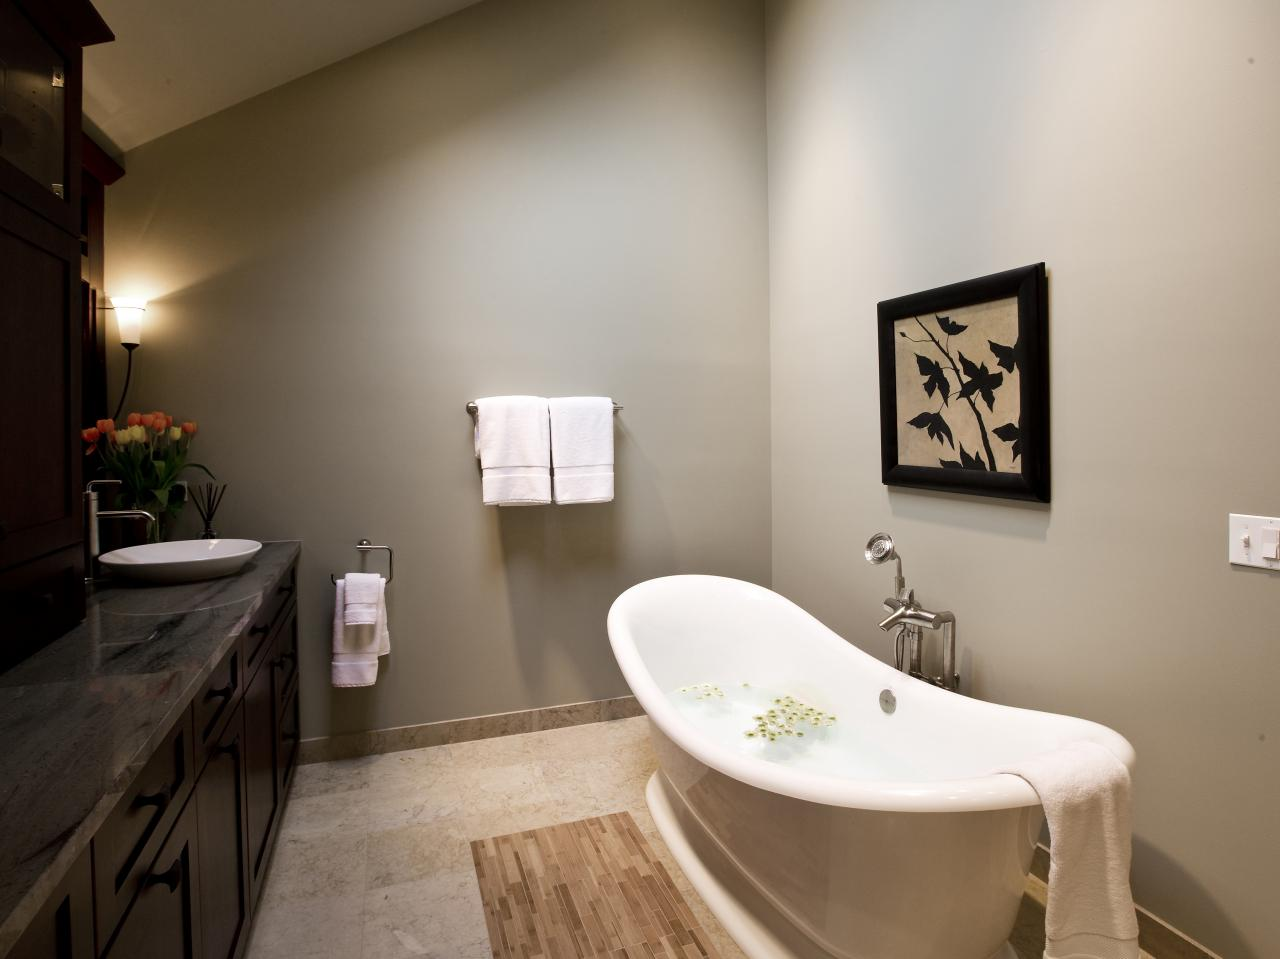 Soaking Tub Designs: Pictures, Ideas & Tips From HGTV | HGTV